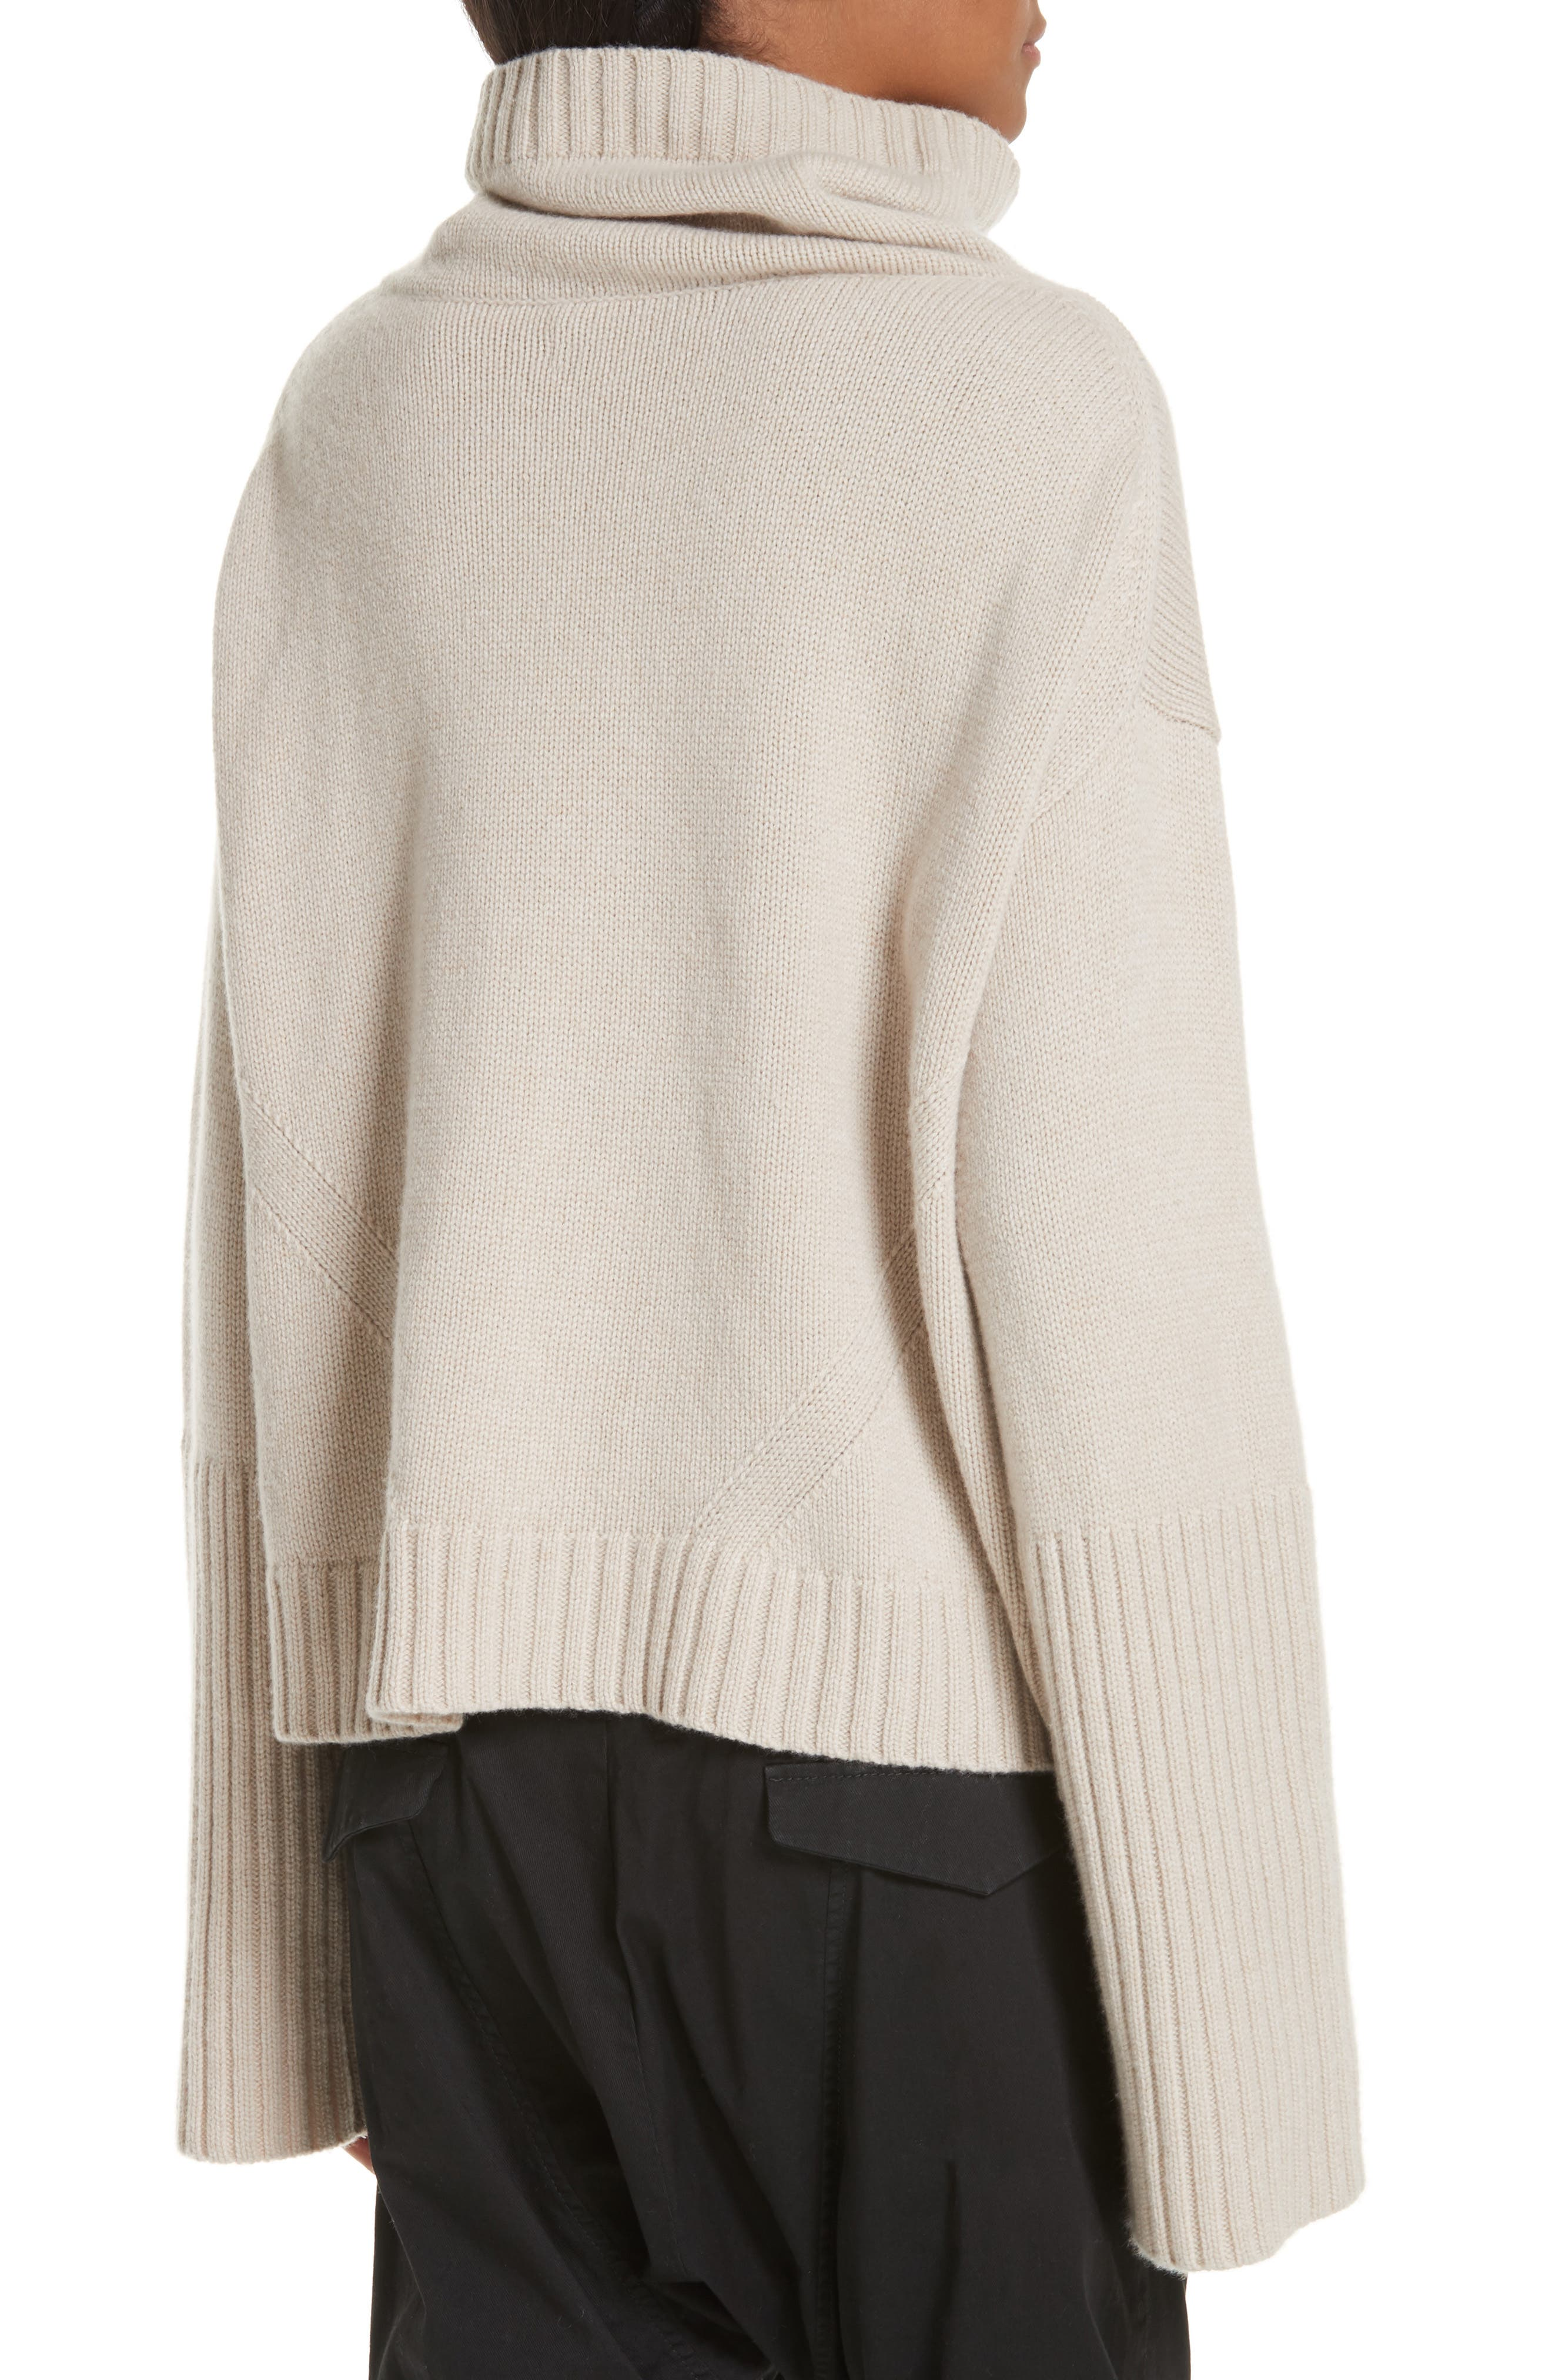 NILI LOTAN, Boyd Cashmere Cowl Neck Sweater, Alternate thumbnail 2, color, LIGHT TAUPE